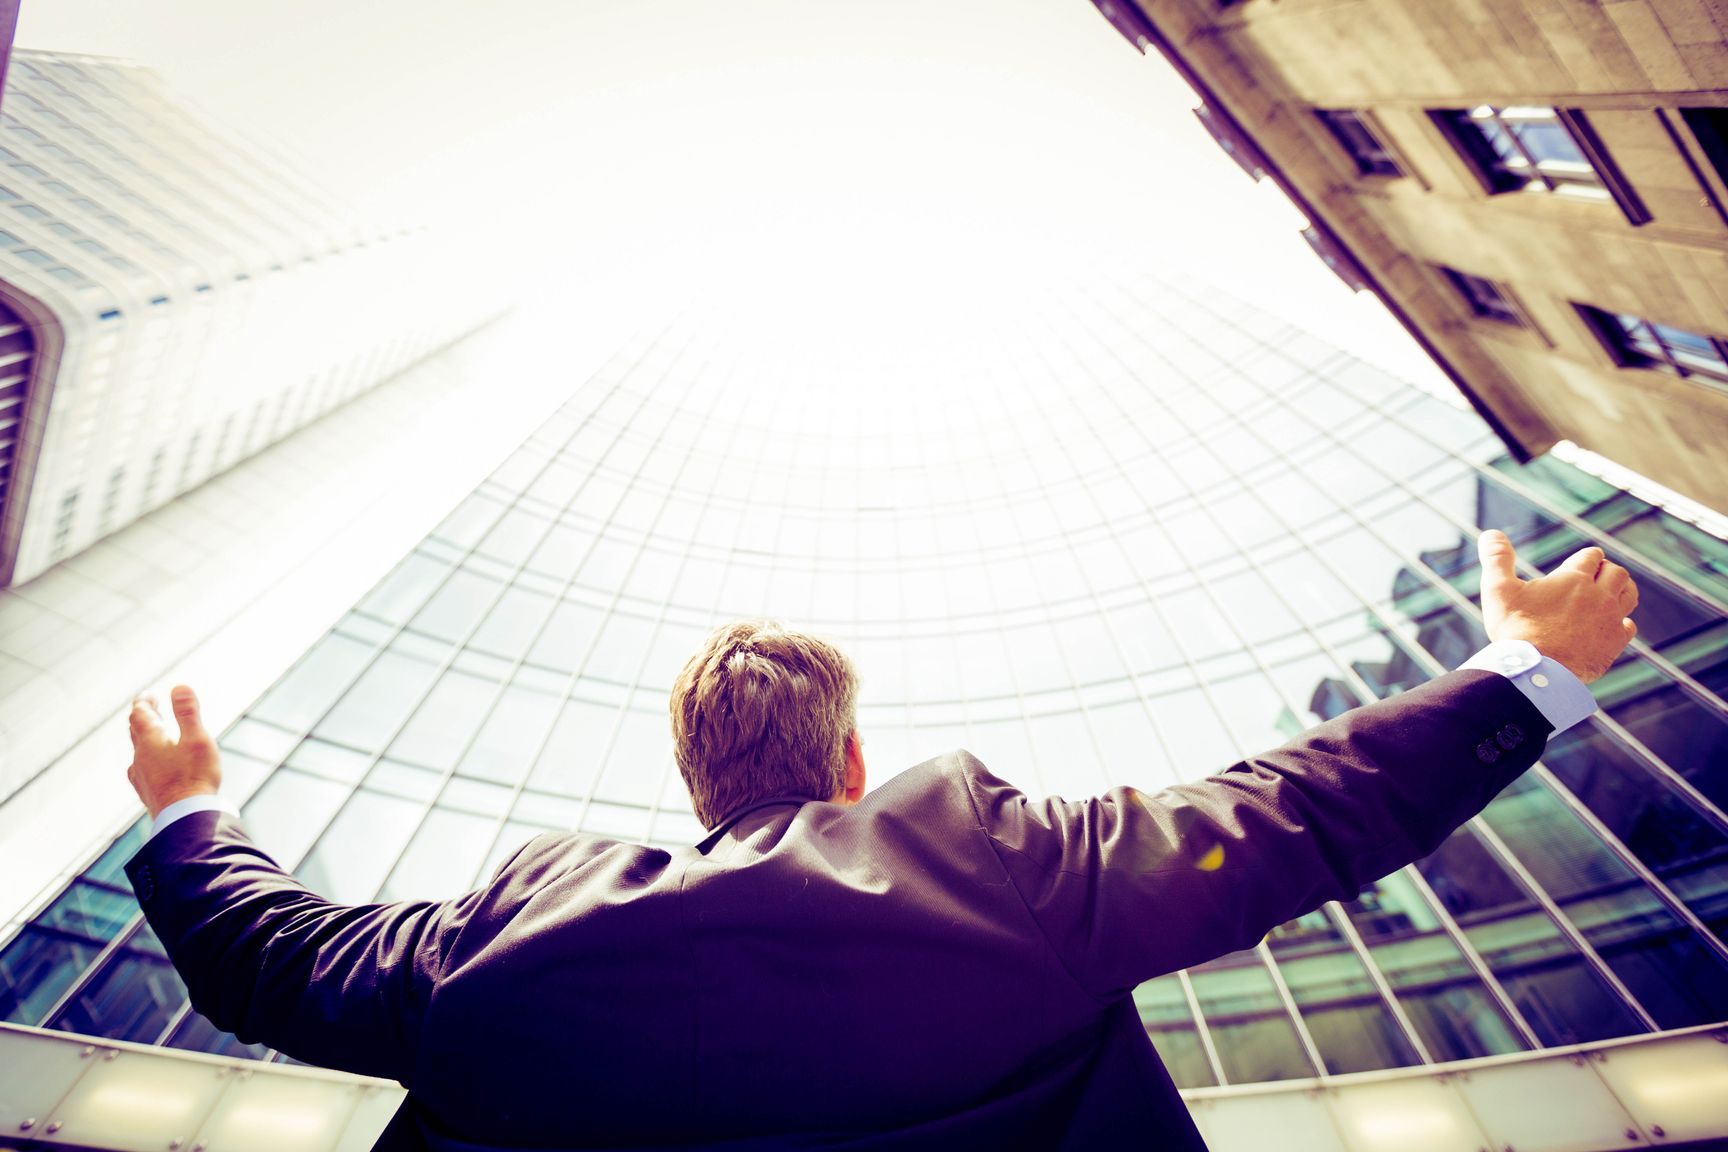 Man on a suit looking upwards with arms wide open, indicating that learning finance can help you fulfill your life goals